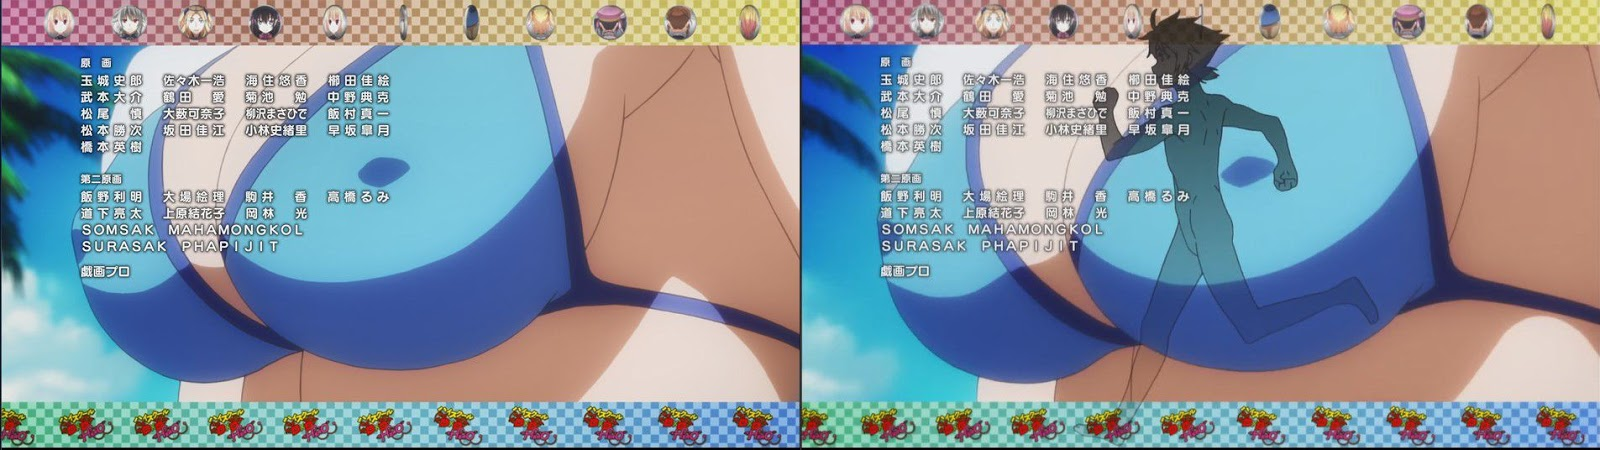 High School DxD Hero Blu-ray VS Anime - Muitos Peitos